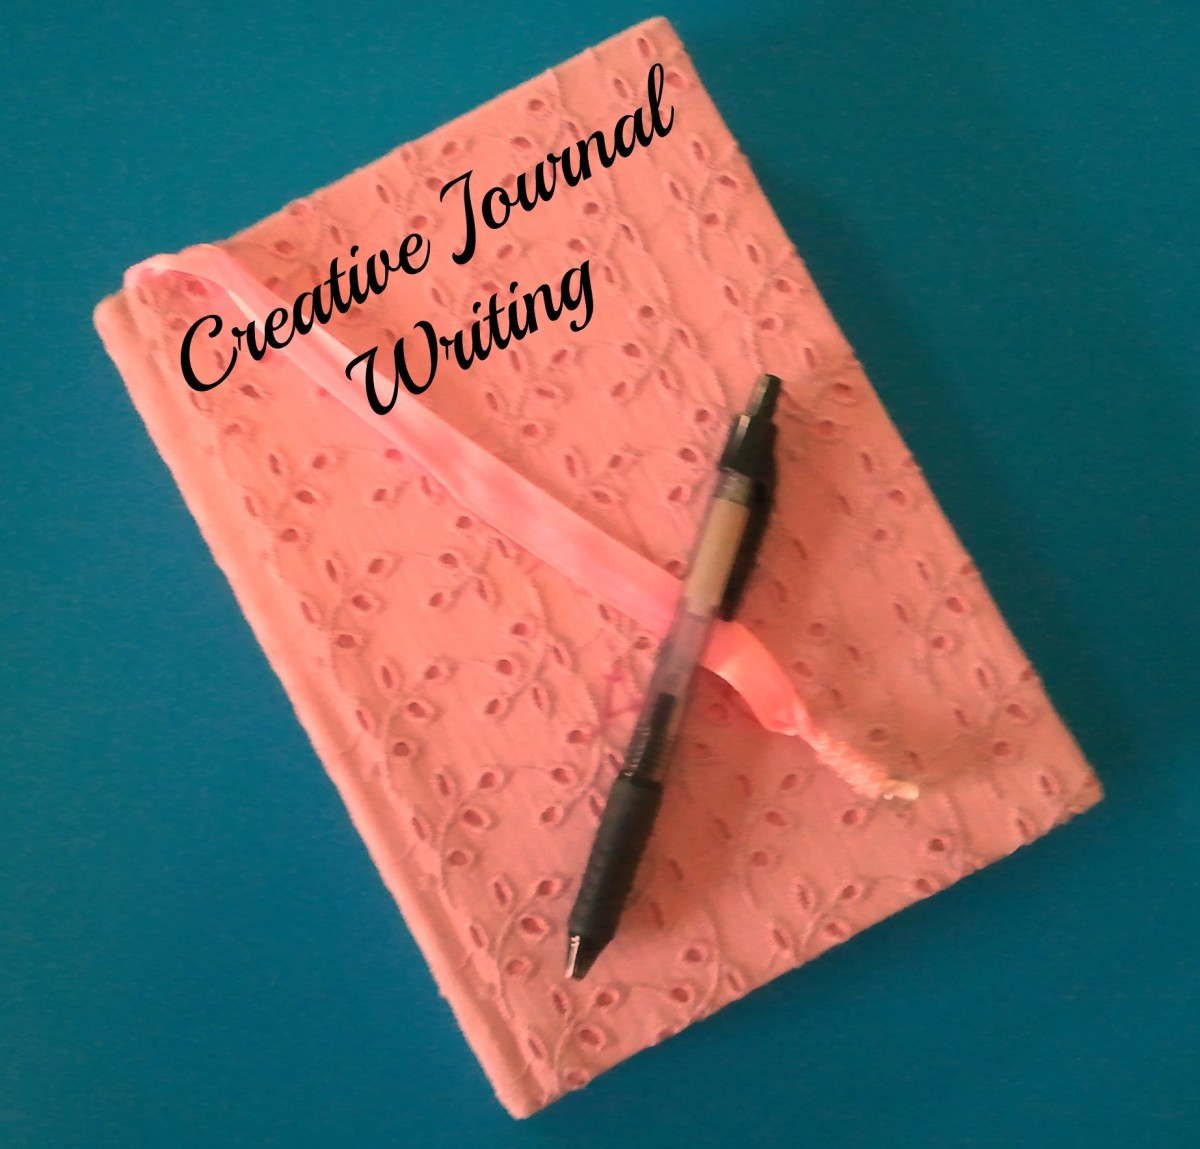 6-easy-creative-journal-writing-prompts